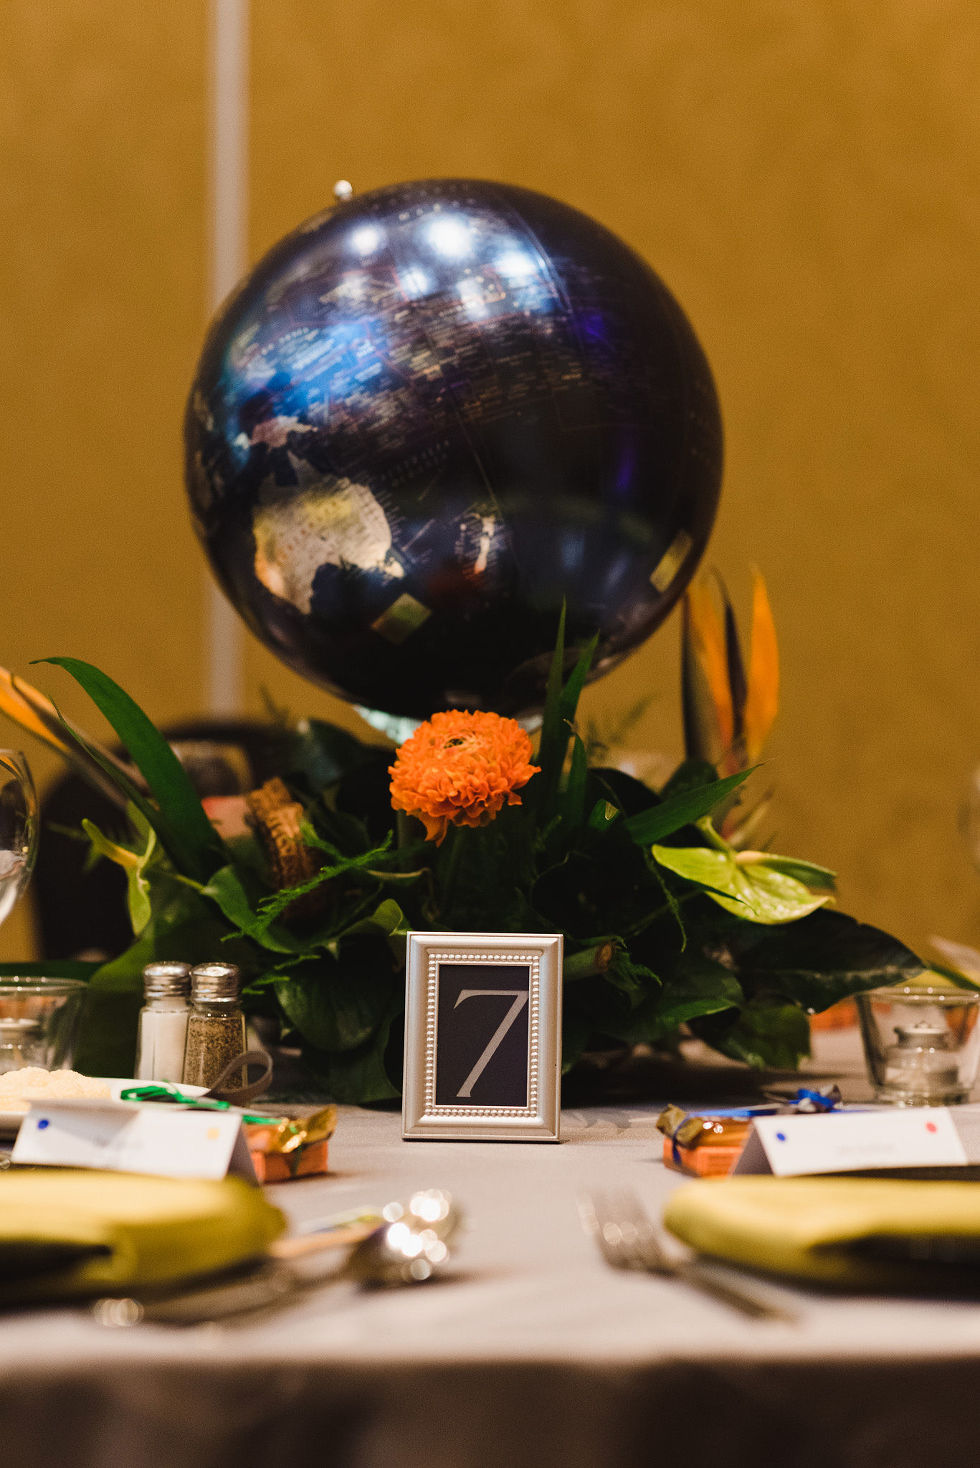 table setting with a globe centrepiece and the number 7 sign for a wedding at the Hilton Fallsview in Niagara Falls